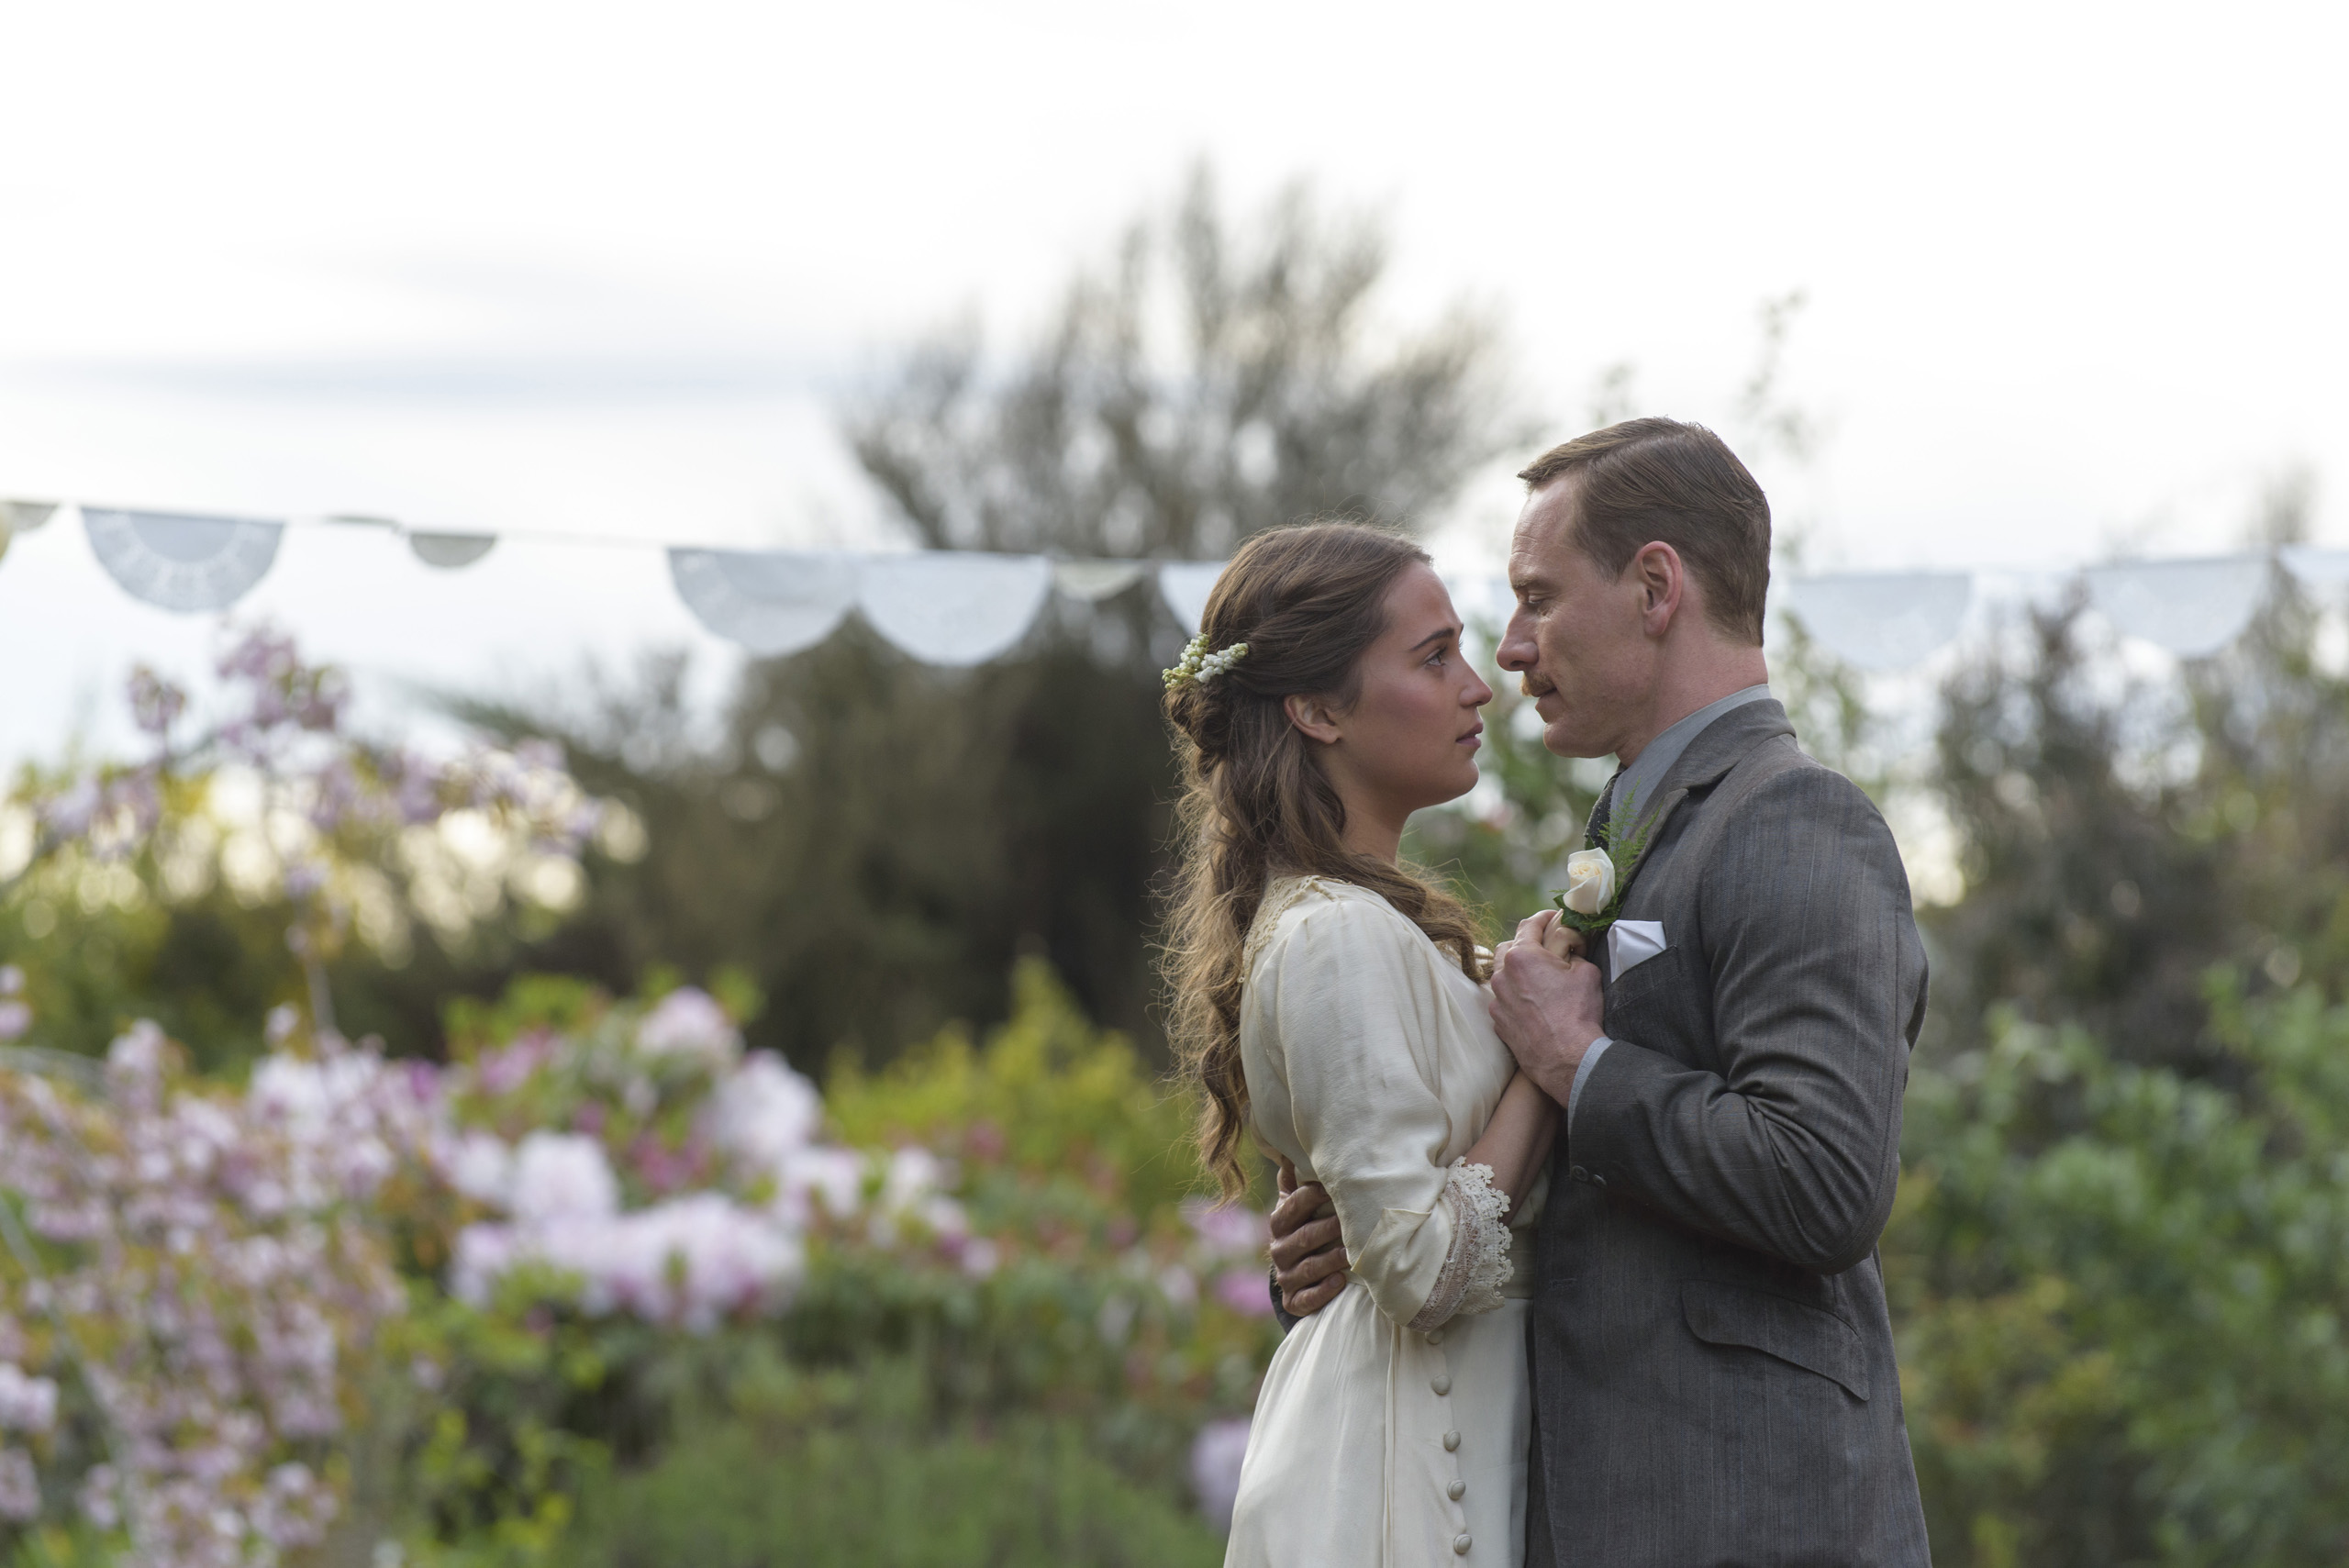 Michael Fassbender stars as Tom Sherbourne and Alicia Vikander as his wife Isabel in DreamWorks Pictures poignant drama  The Light Between Oceans.